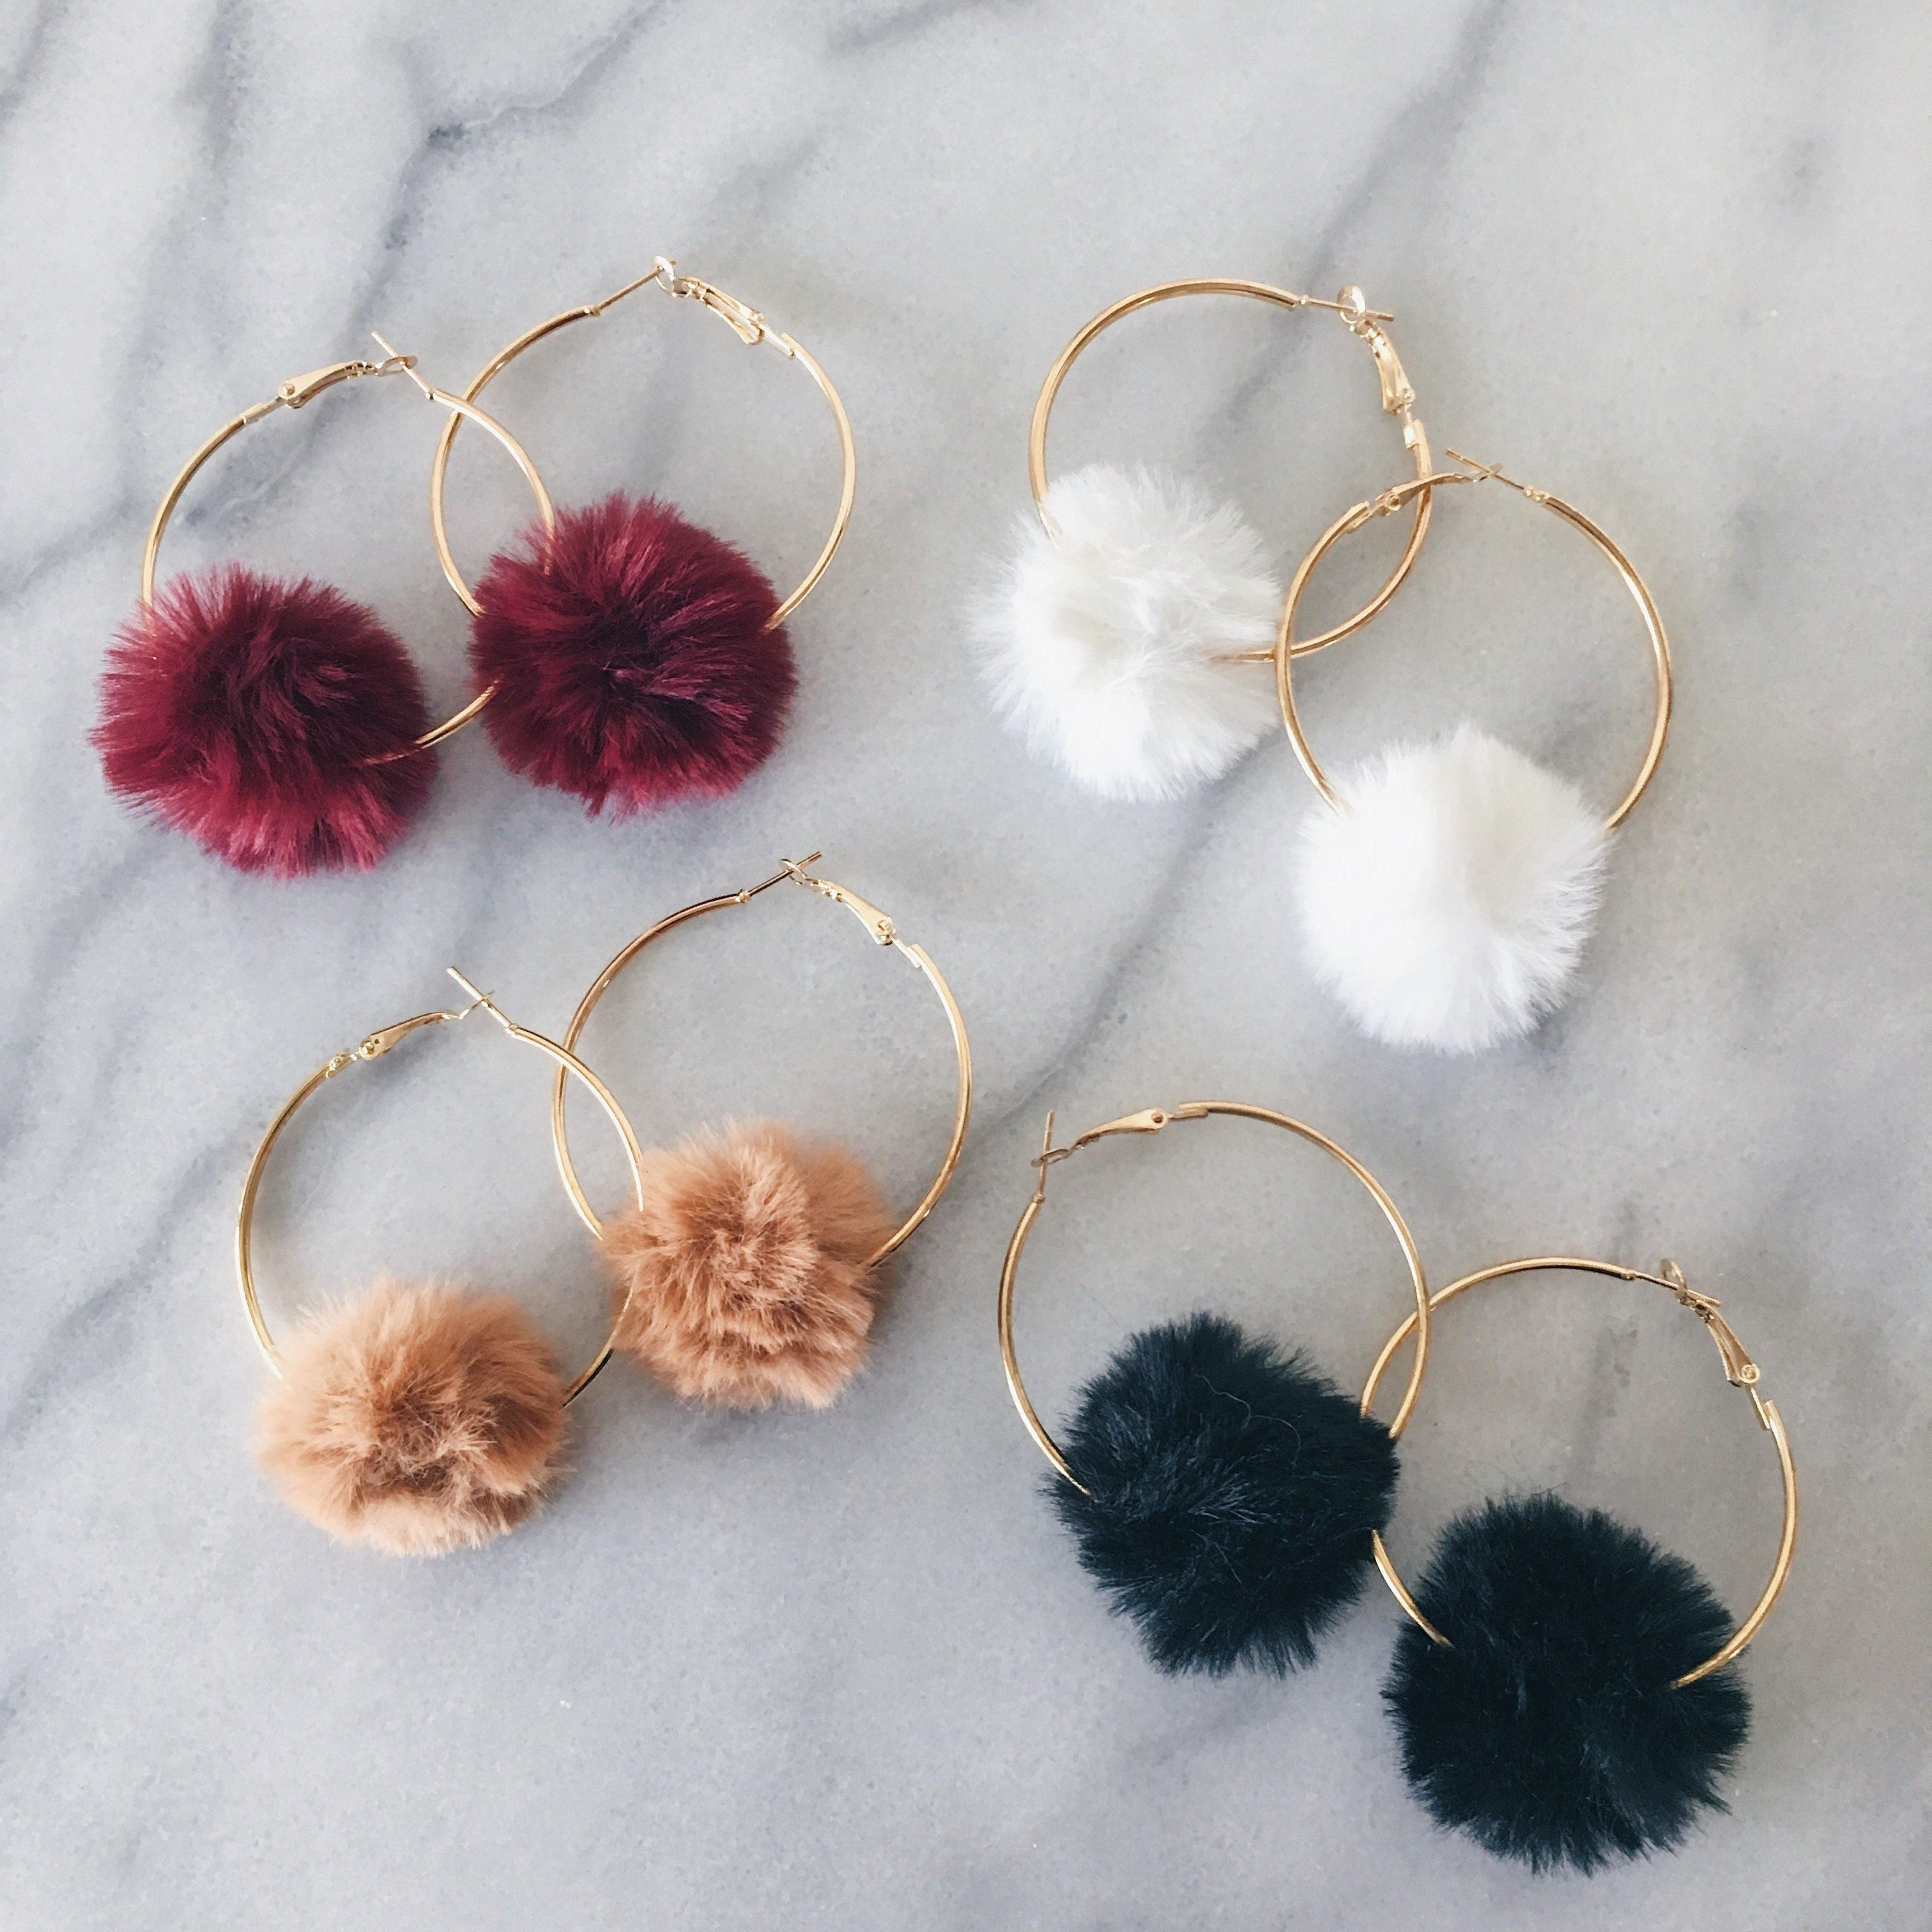 Luxurious, flirty, and fun, our Snow Bunny Puff Earrings are a stylish way to add winter glam to your outfit. Be original and take winter glam to the next level! Soft faux fur pom pom glams up a golden hoop. Fluff it out to get the round shape after taking it out of our pillow box packaging. Last Chance = FINAL SALE